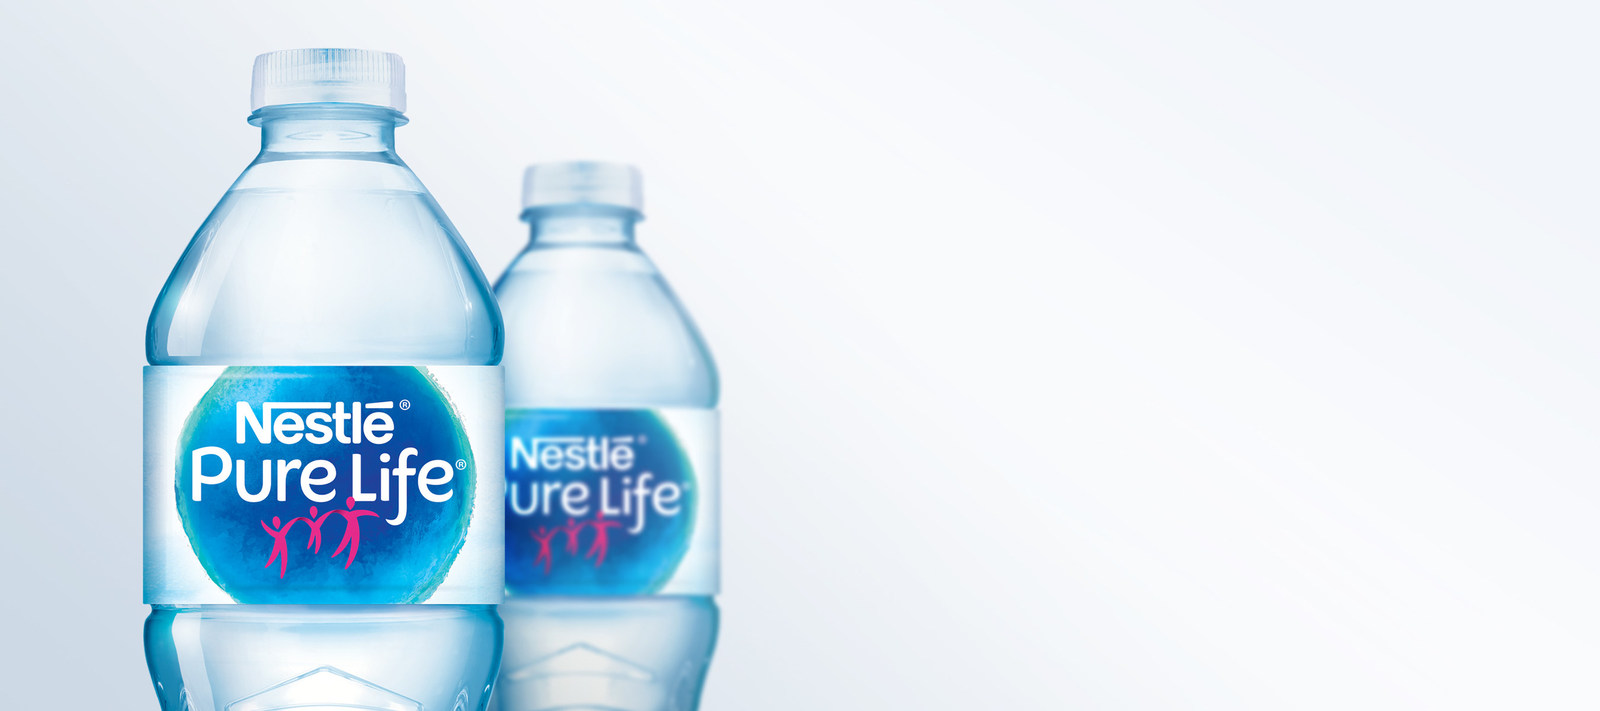 Nestlé Pure Life Purified Water Unveils New Global Campaign